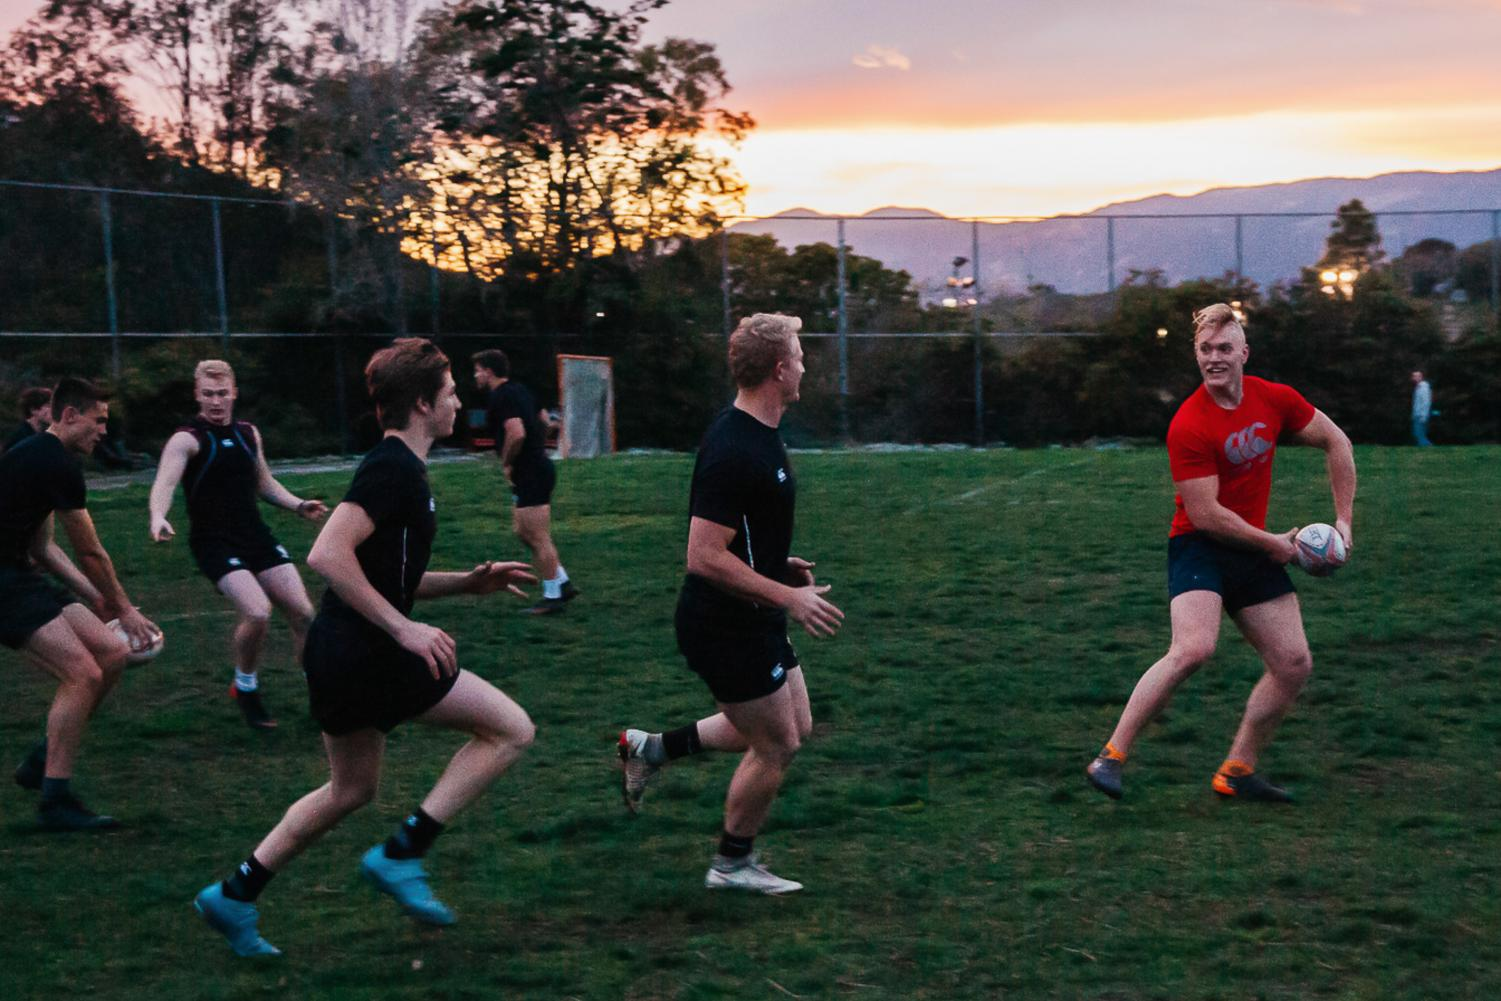 Sebastian Thogersen prepares to pass the ball to teammates during the SBCC men's rugby practice on Monday, March 11, 2019, at Elings Park in Santa Barbara, Calif. The team worked on spacing, passing and communication durning the practice.